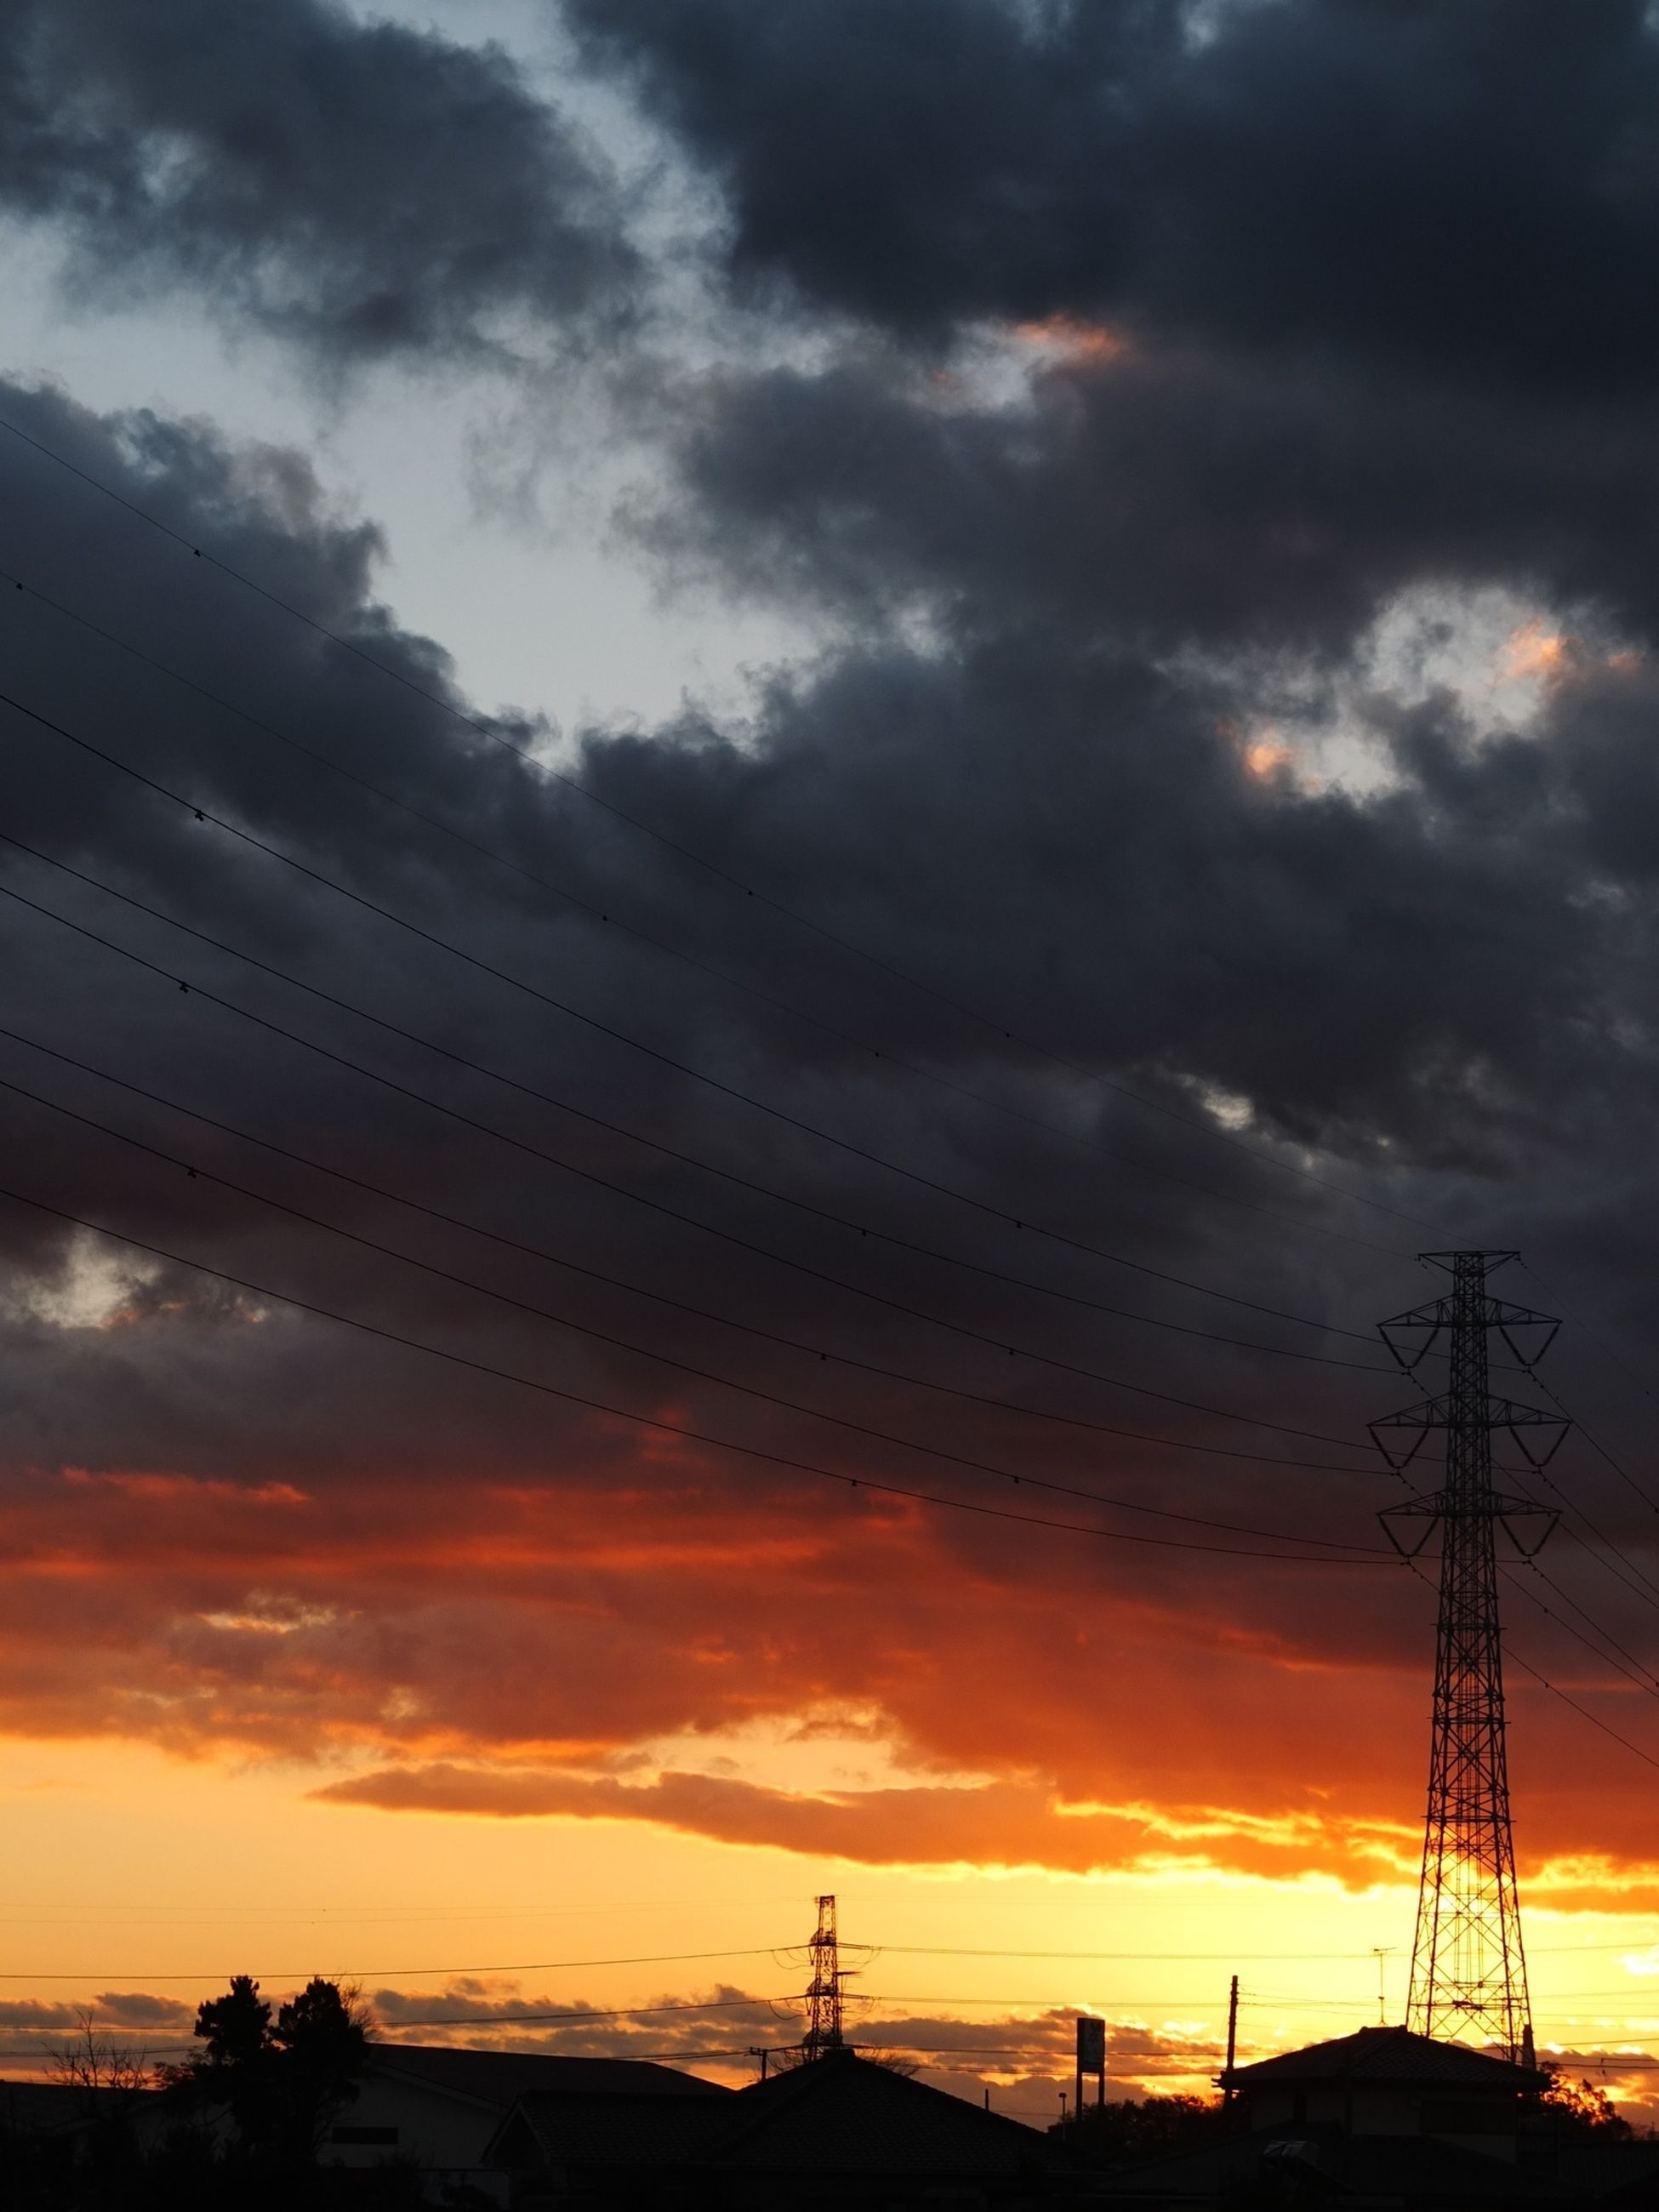 sunset, sky, cloud - sky, silhouette, cloudy, low angle view, beauty in nature, orange color, scenics, power line, weather, cloud, nature, bird, dramatic sky, connection, tranquility, overcast, tranquil scene, electricity pylon